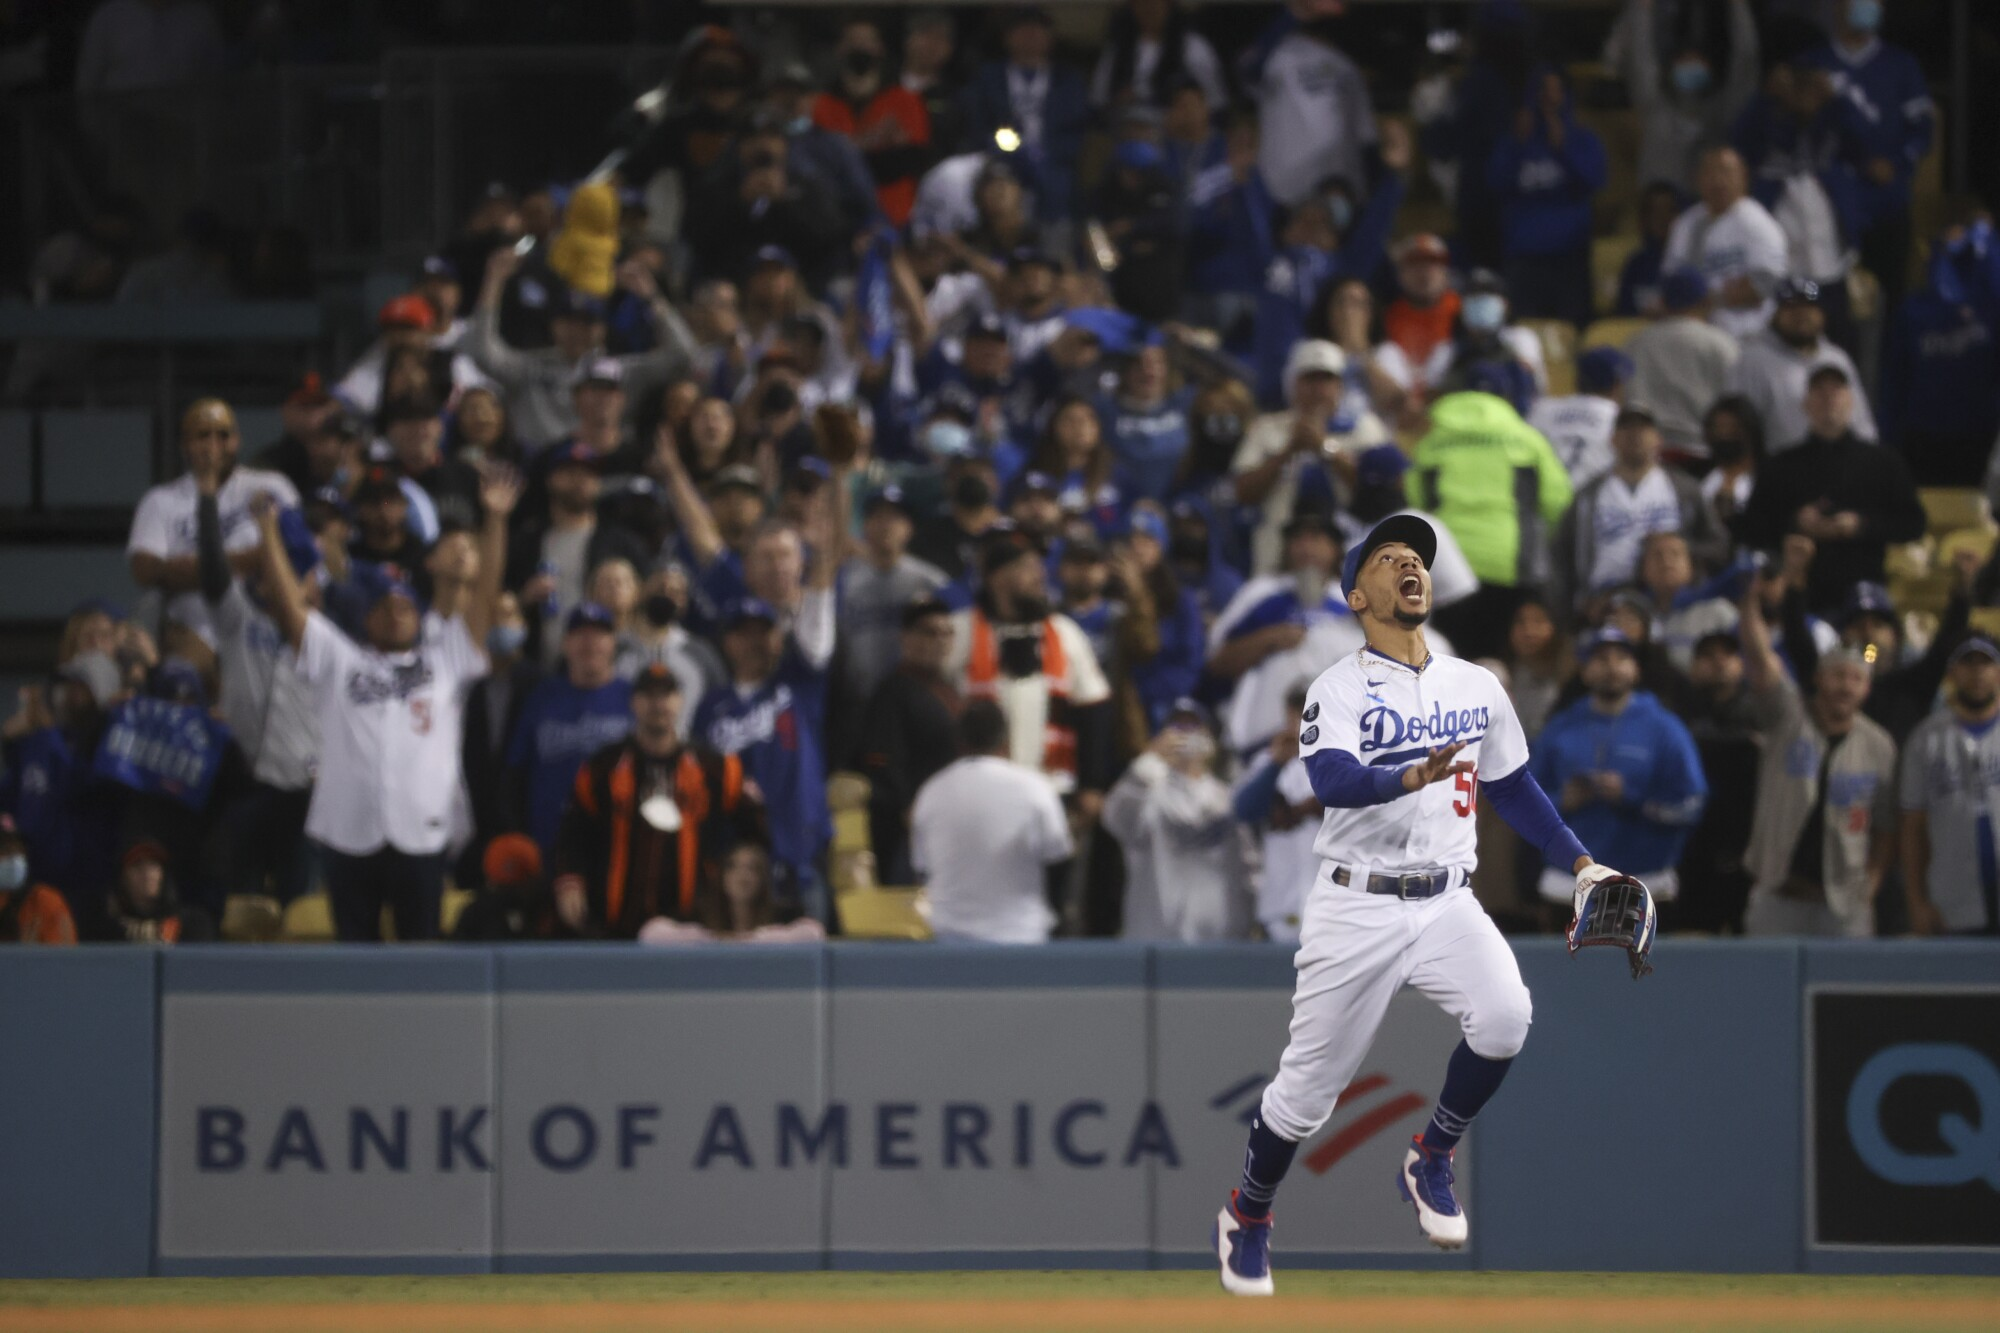 Los Angeles Dodgers right fielder Mookie Betts calls for a pop fly by San Francisco Giants' Donovan Solano